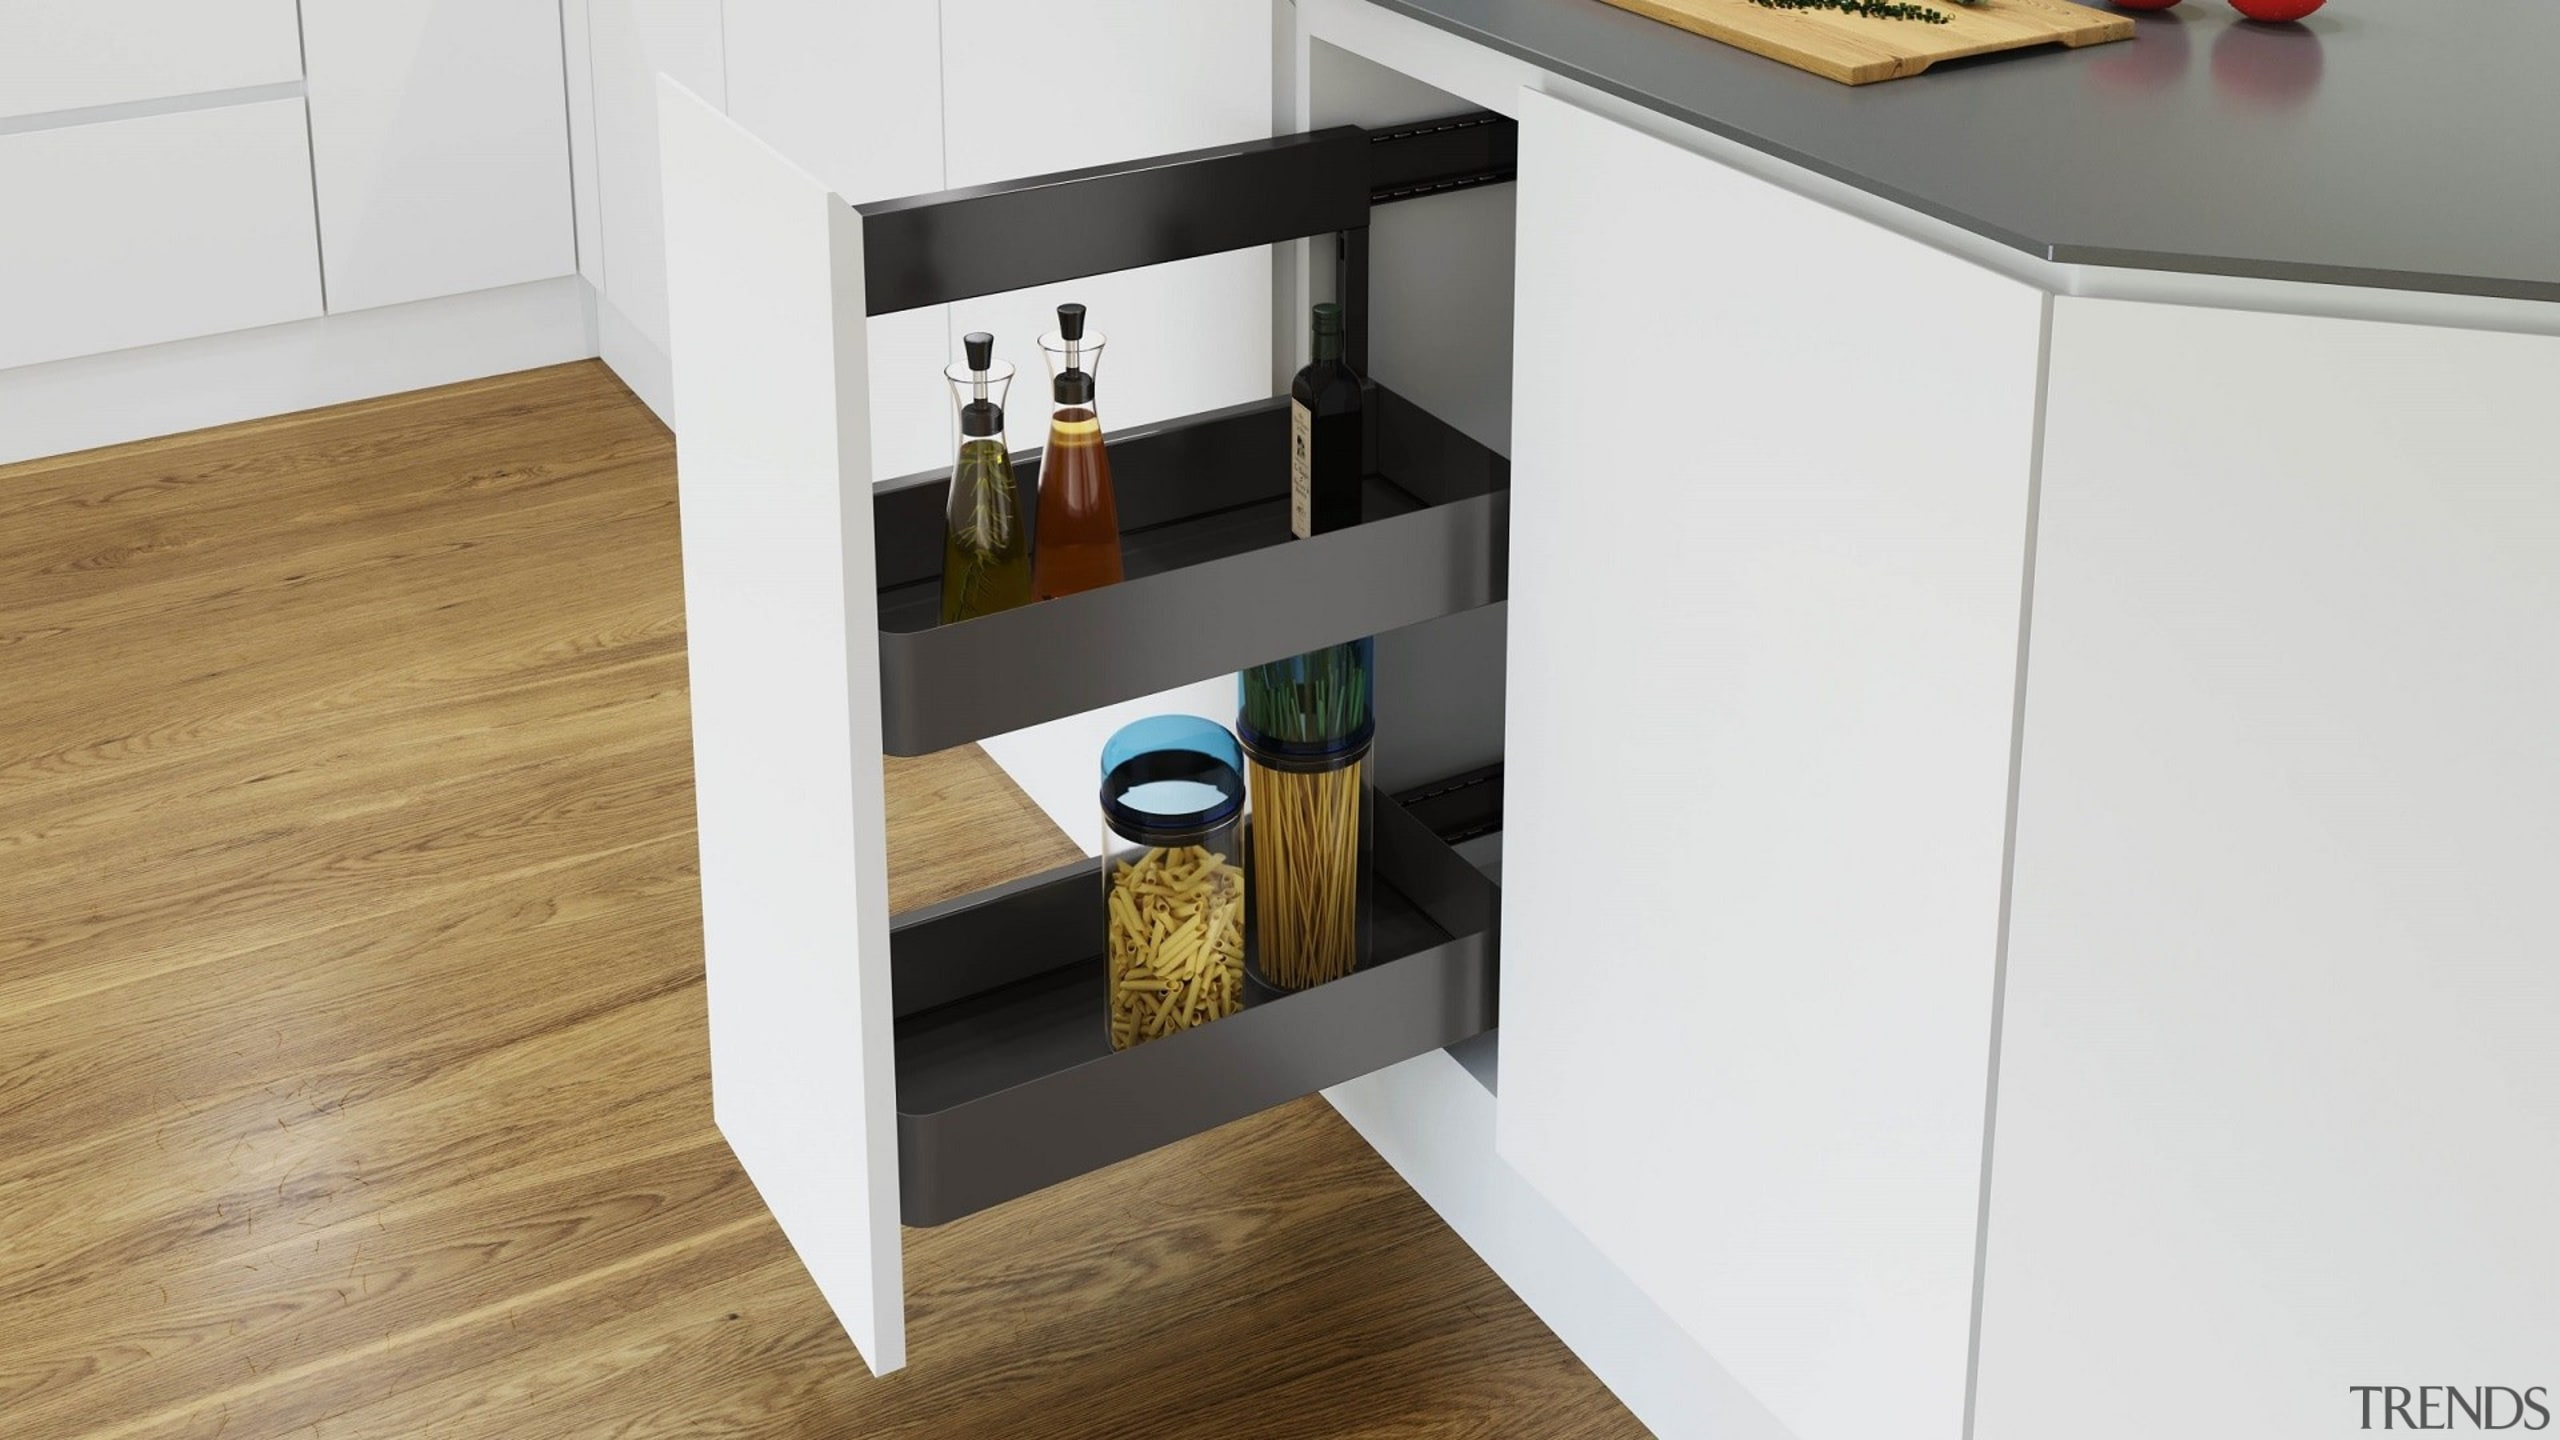 Vauth Sagel SUB Side Underbench Pull Out Unit chest of drawers, drawer, floor, furniture, product, shelf, shelving, sideboard, table, white